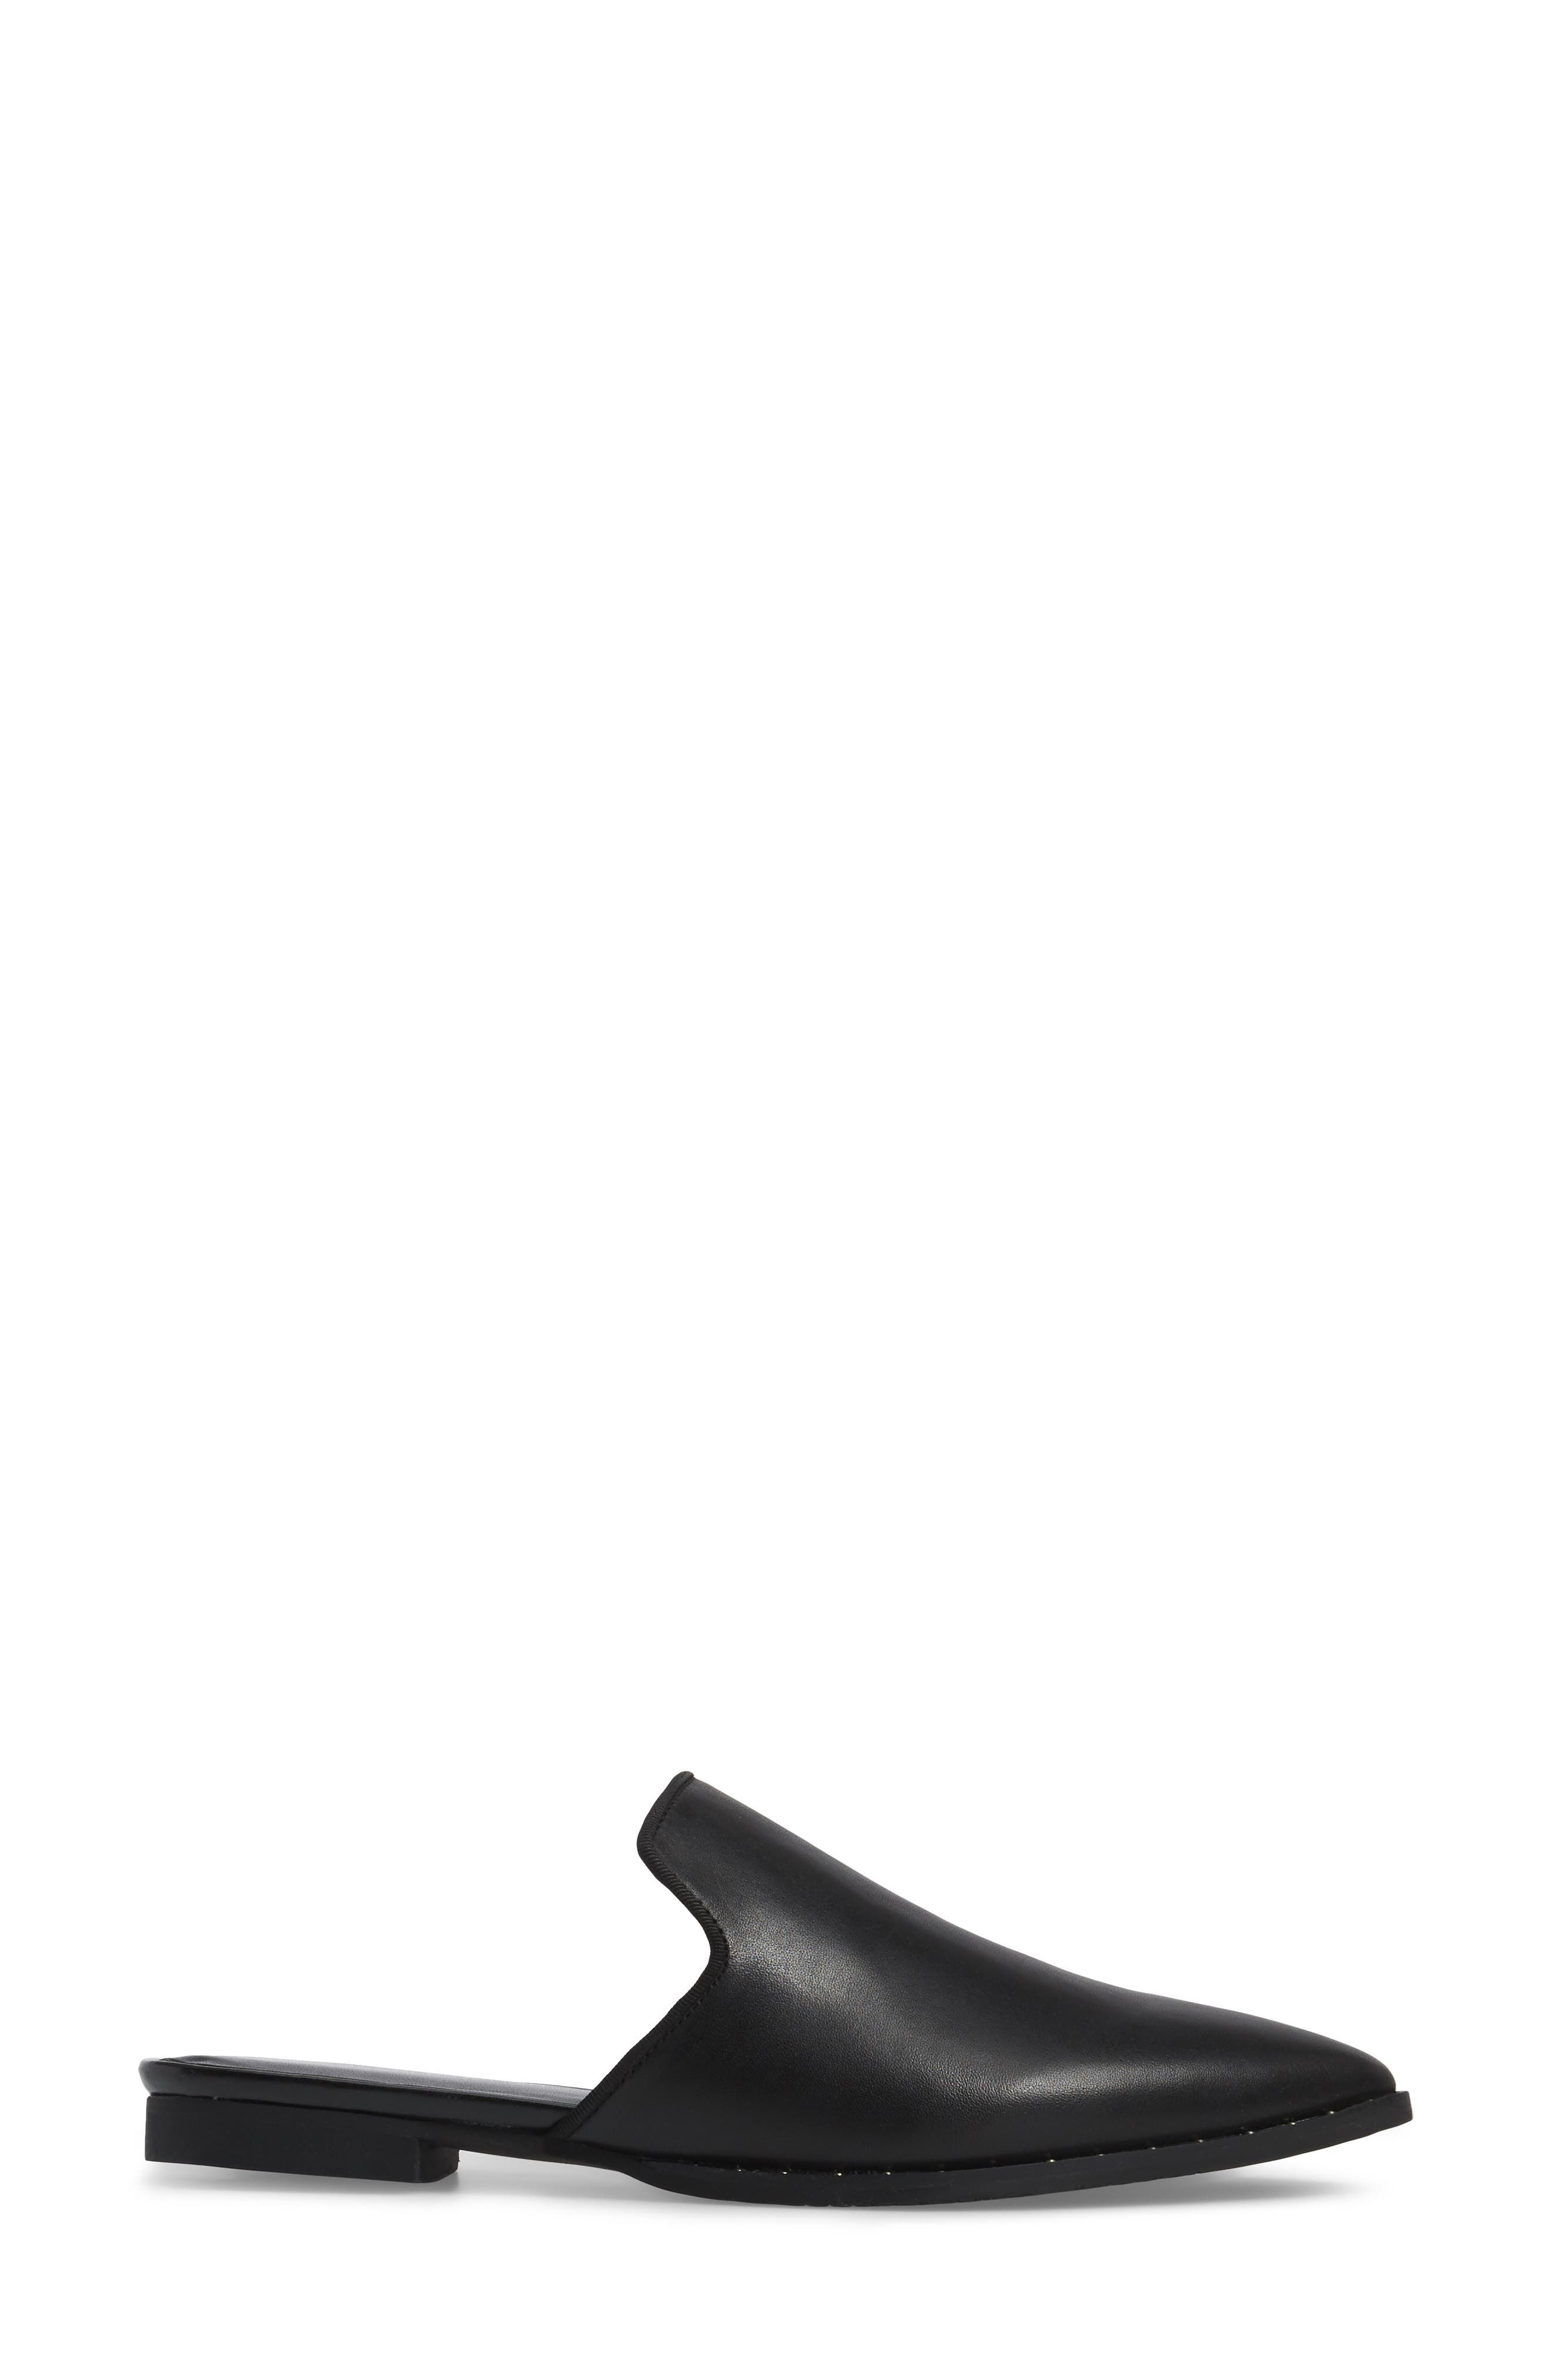 Keaton Loafer Mule,                             Alternate thumbnail 3, color,                             Black Leather